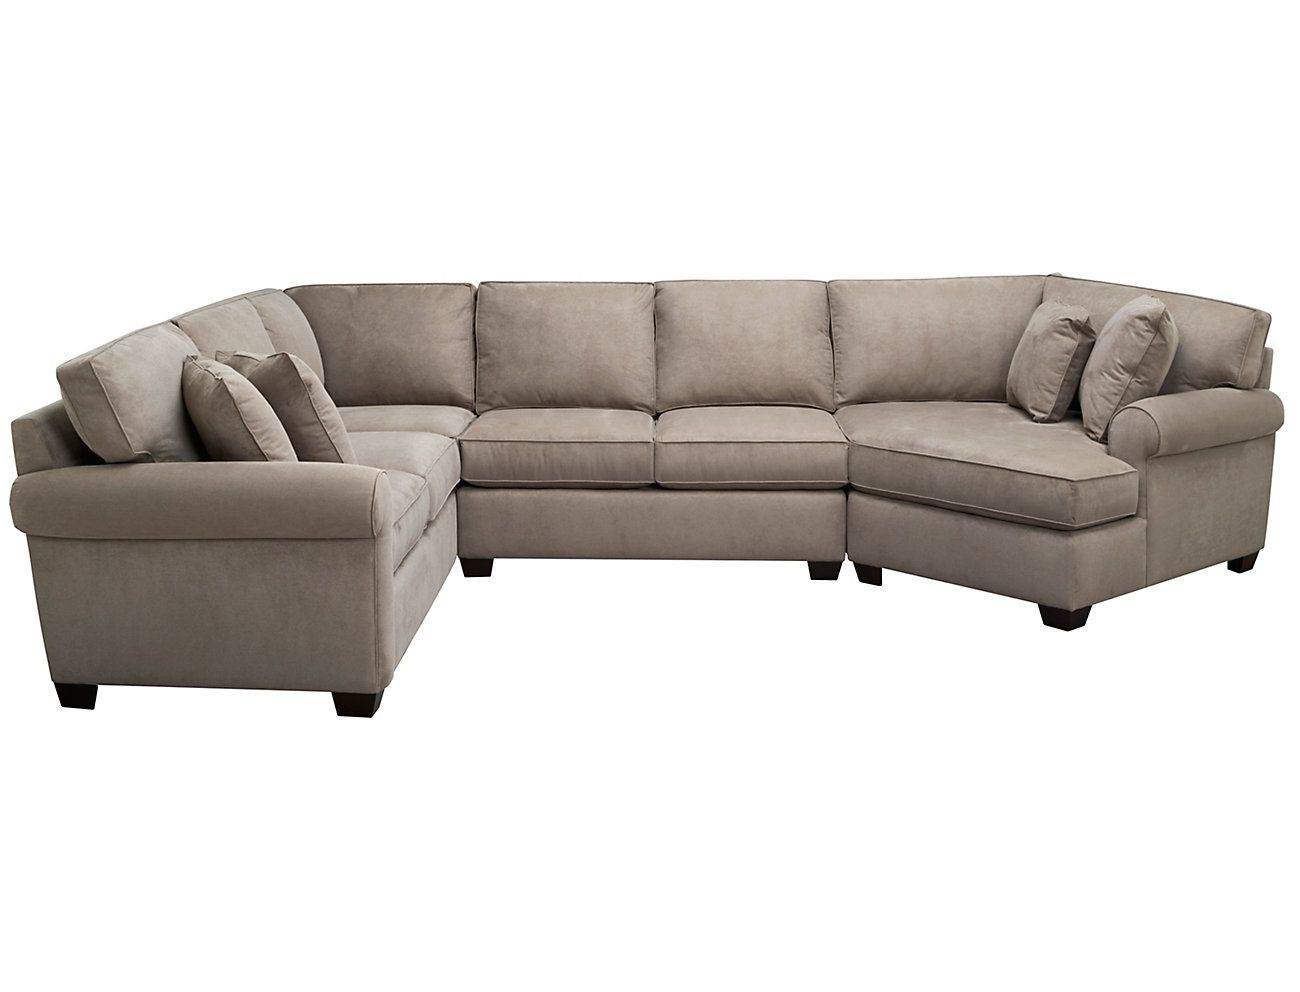 Best Marisol Iii 3 Piece Right Arm Facing Cuddler Sectional 640 x 480